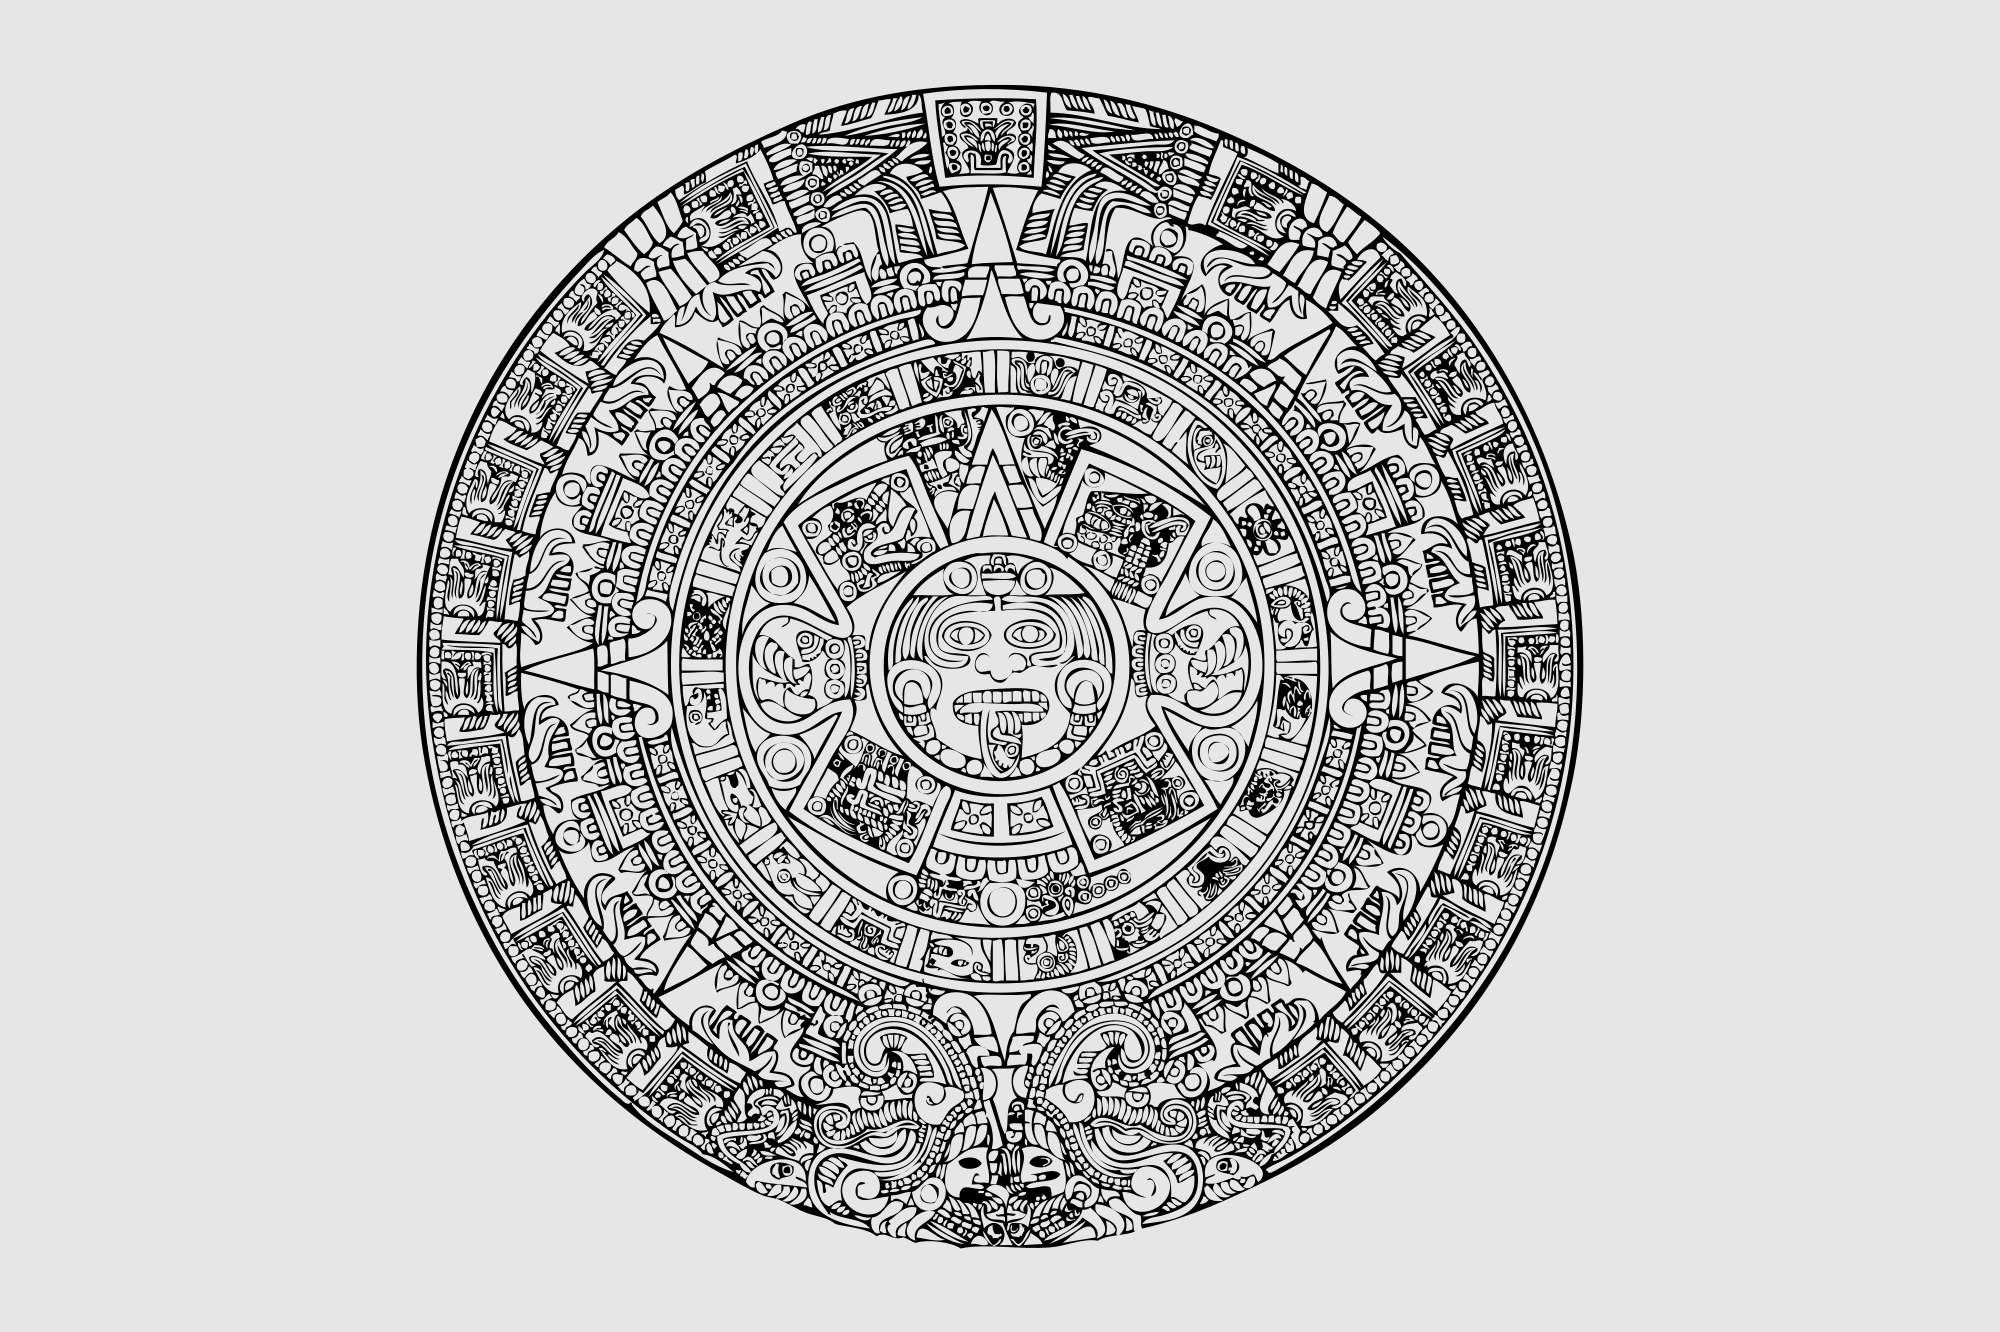 Aztecs svg, Download Aztecs svg for free 2019